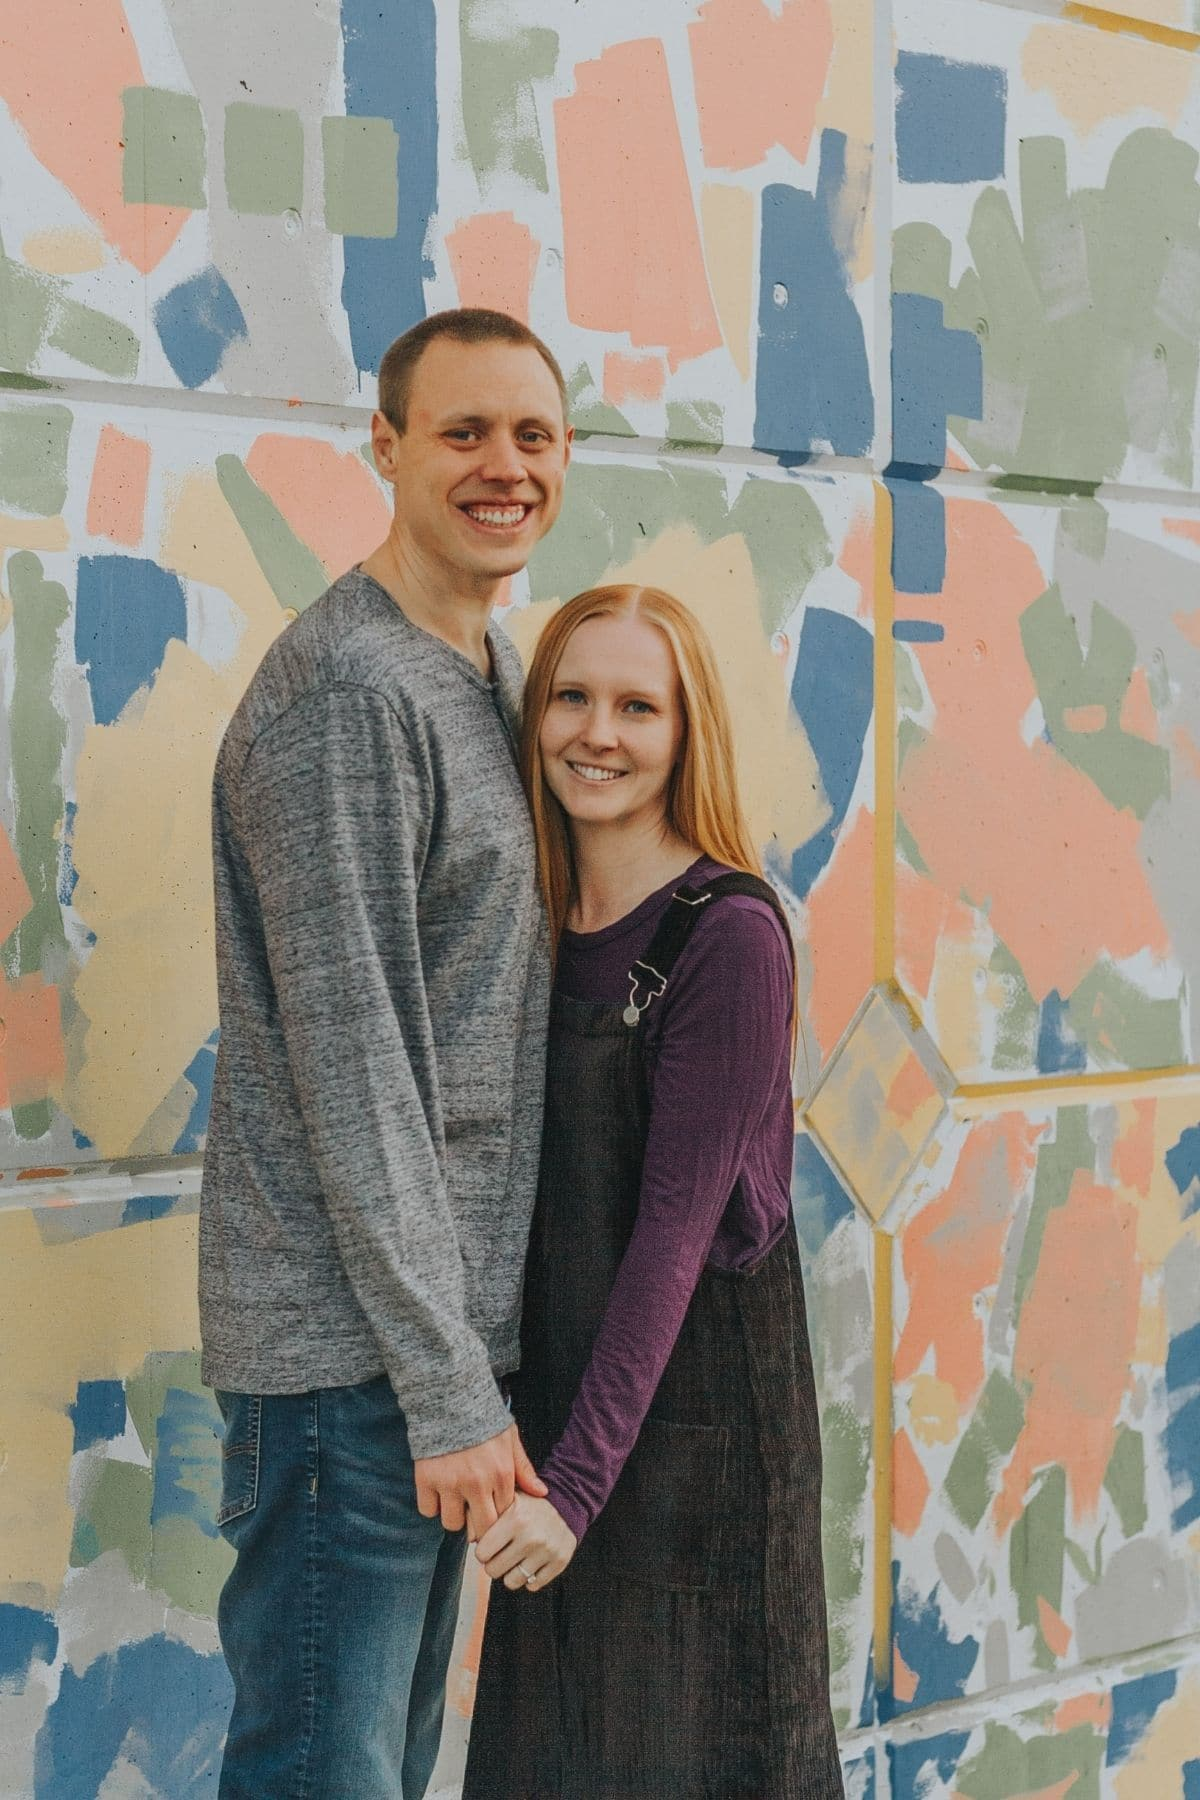 Adam and Liz holding hands in front of abstract painted wall